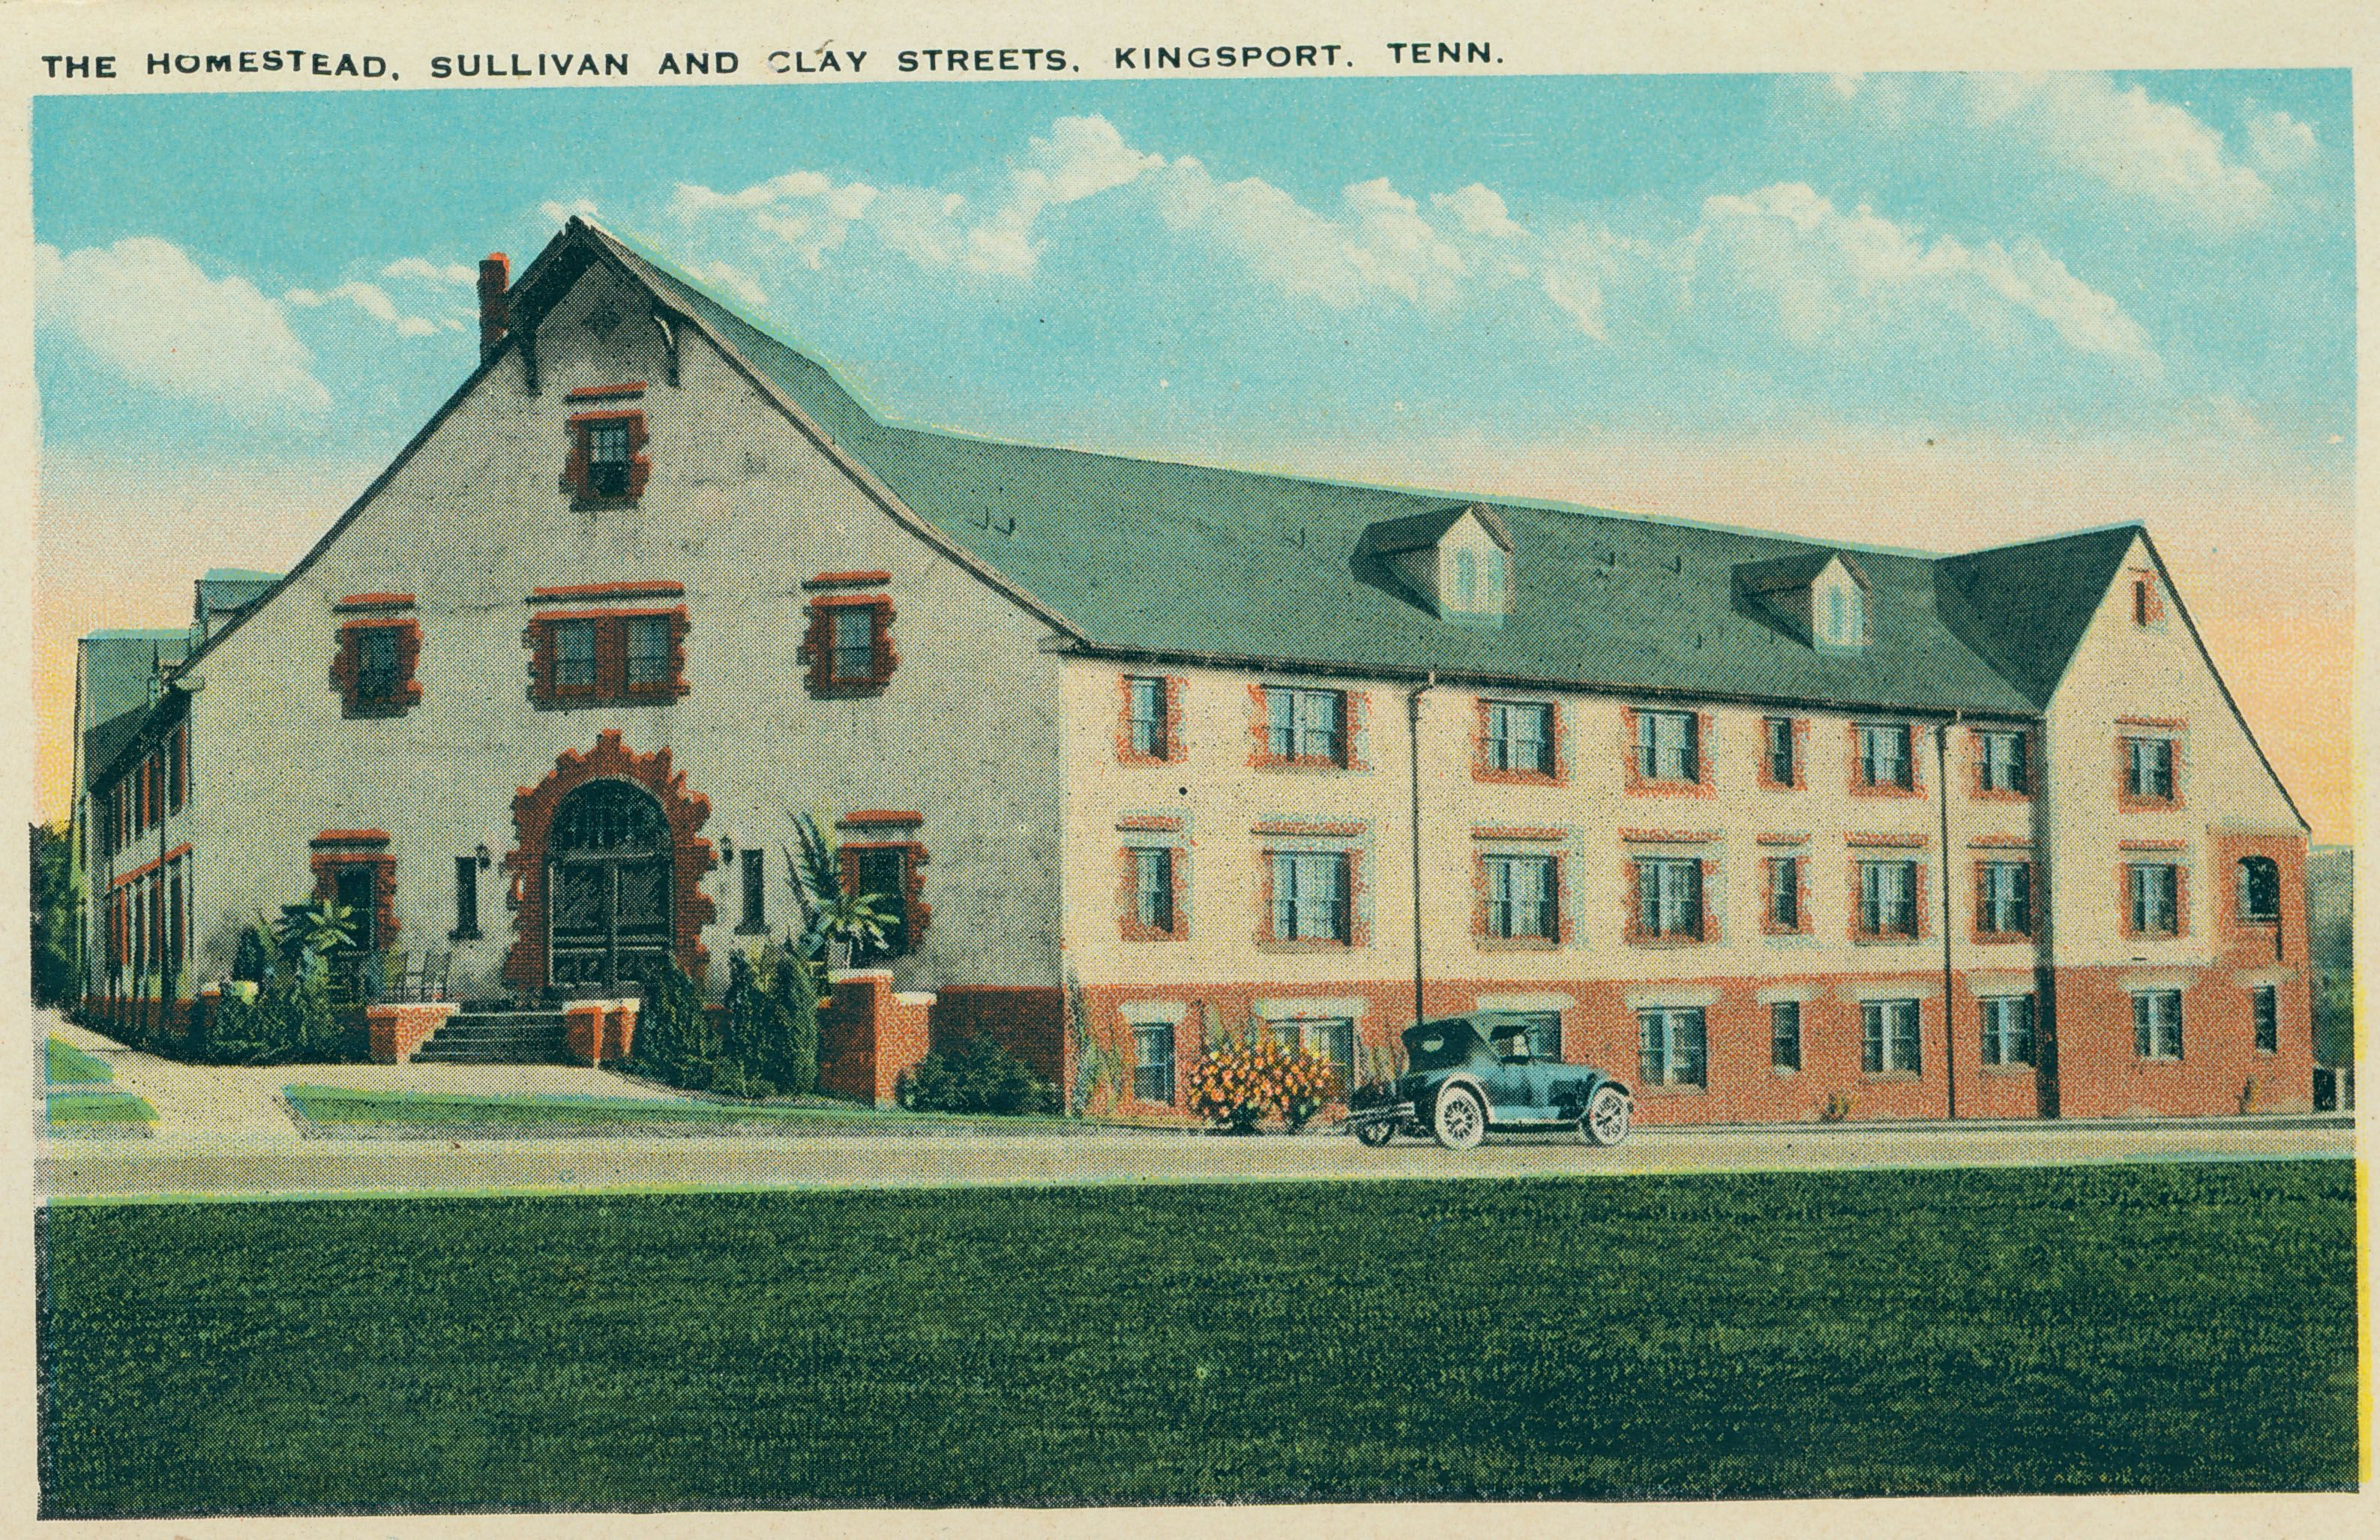 The Homestead Hotel Southern Heritage Kingsport Tennessee Kingsport